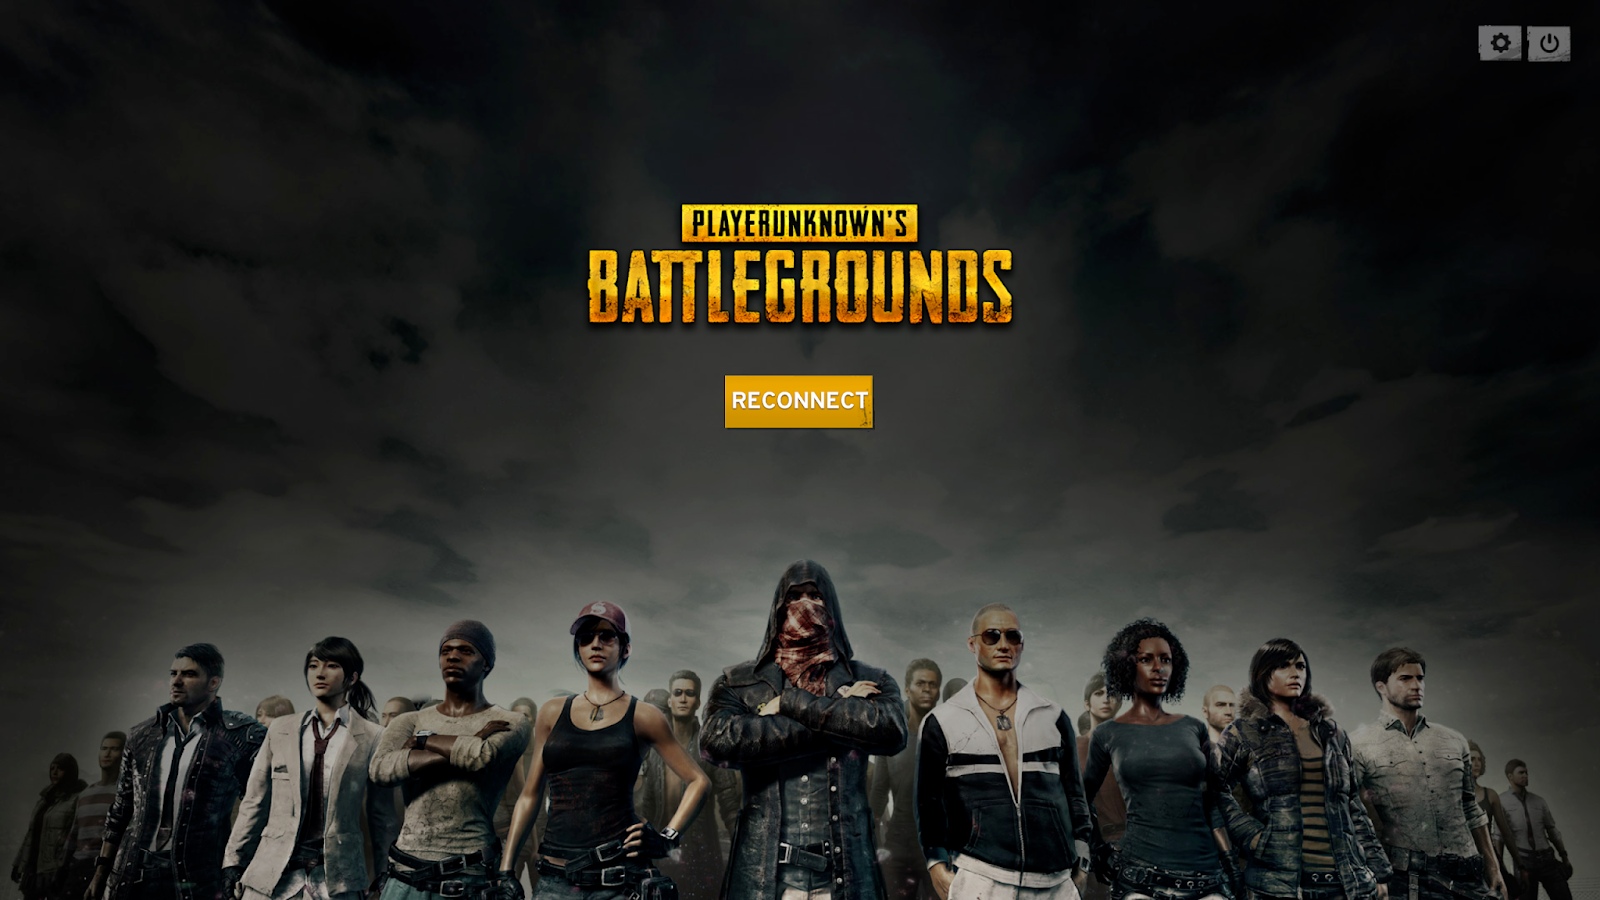 Pubg Hd Wallpapers My Fb Images